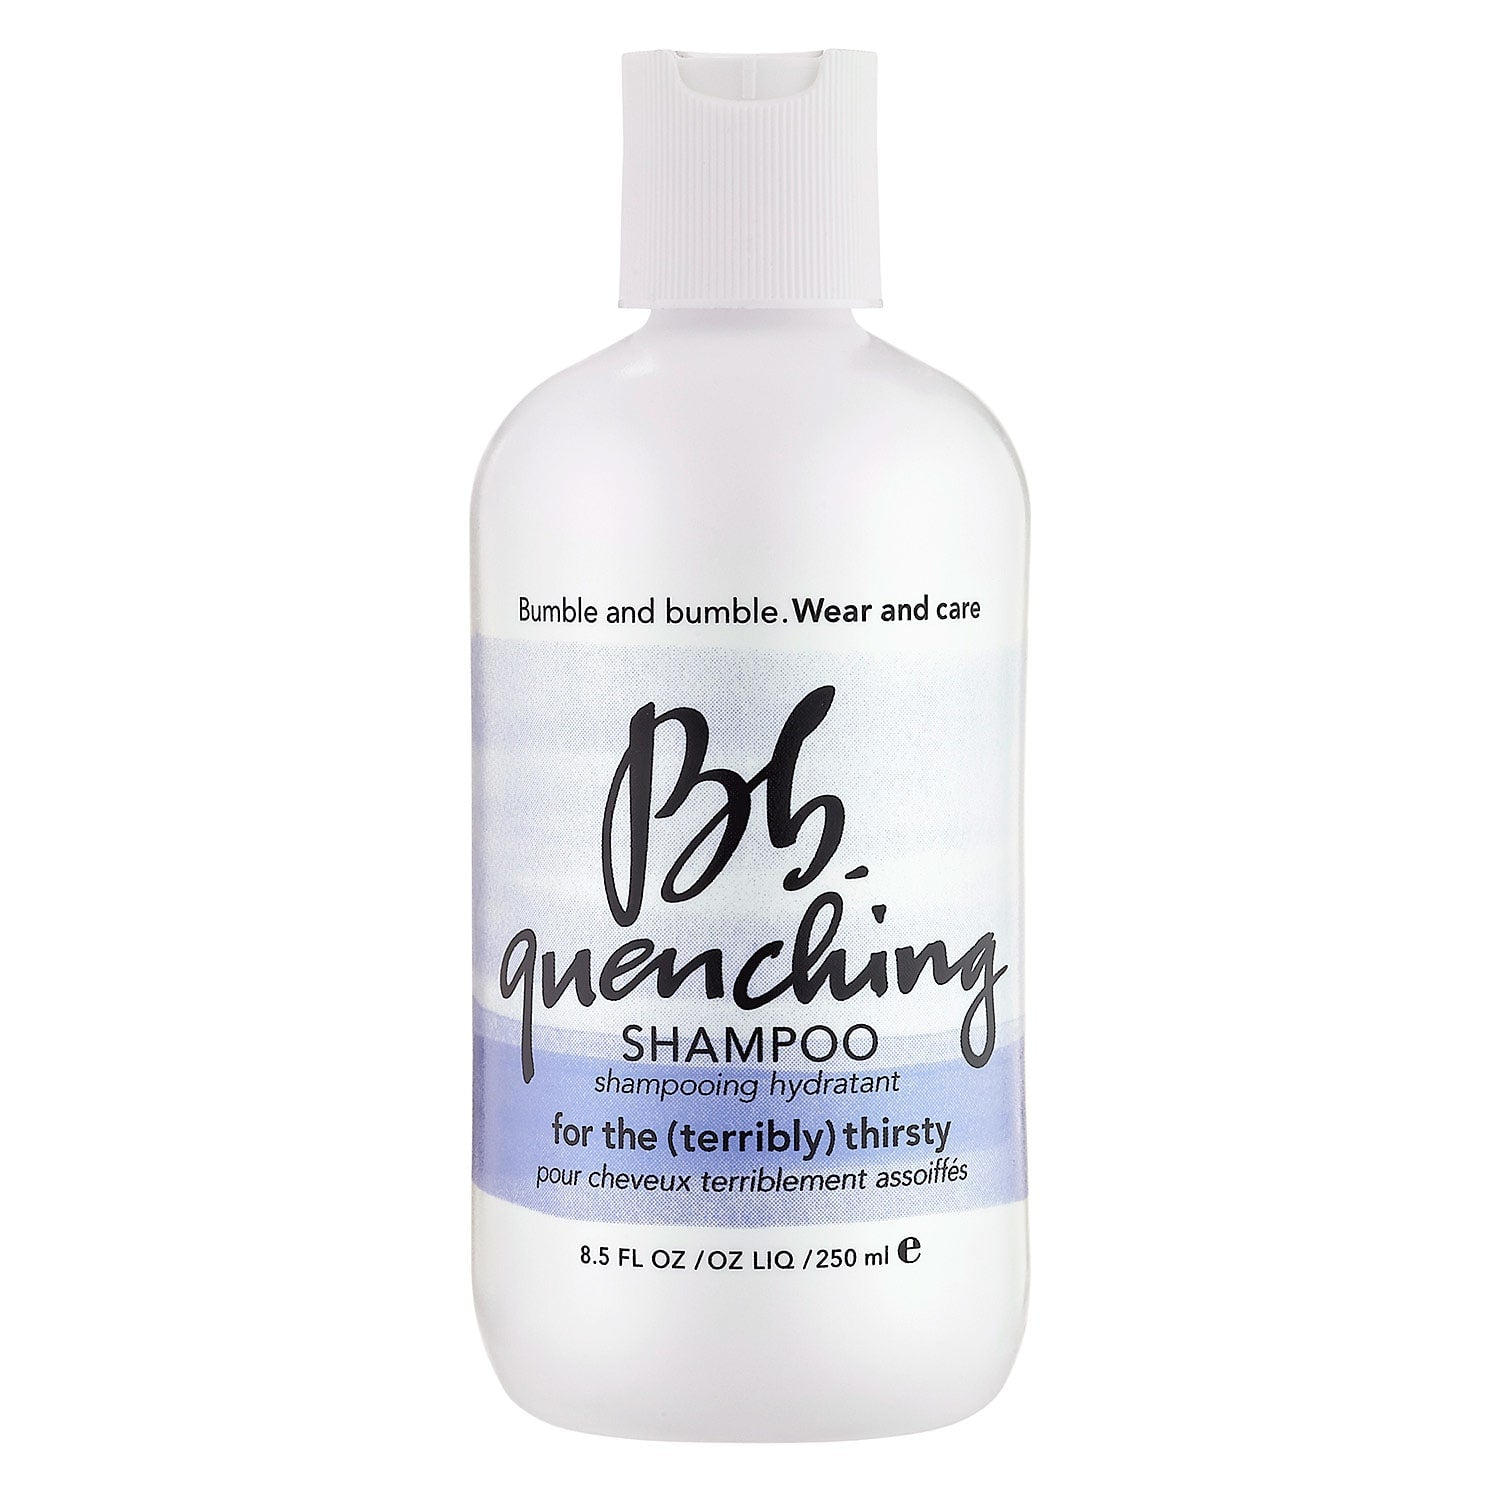 Bumble and bumble Quenching Shampoo | New London Pharmacy